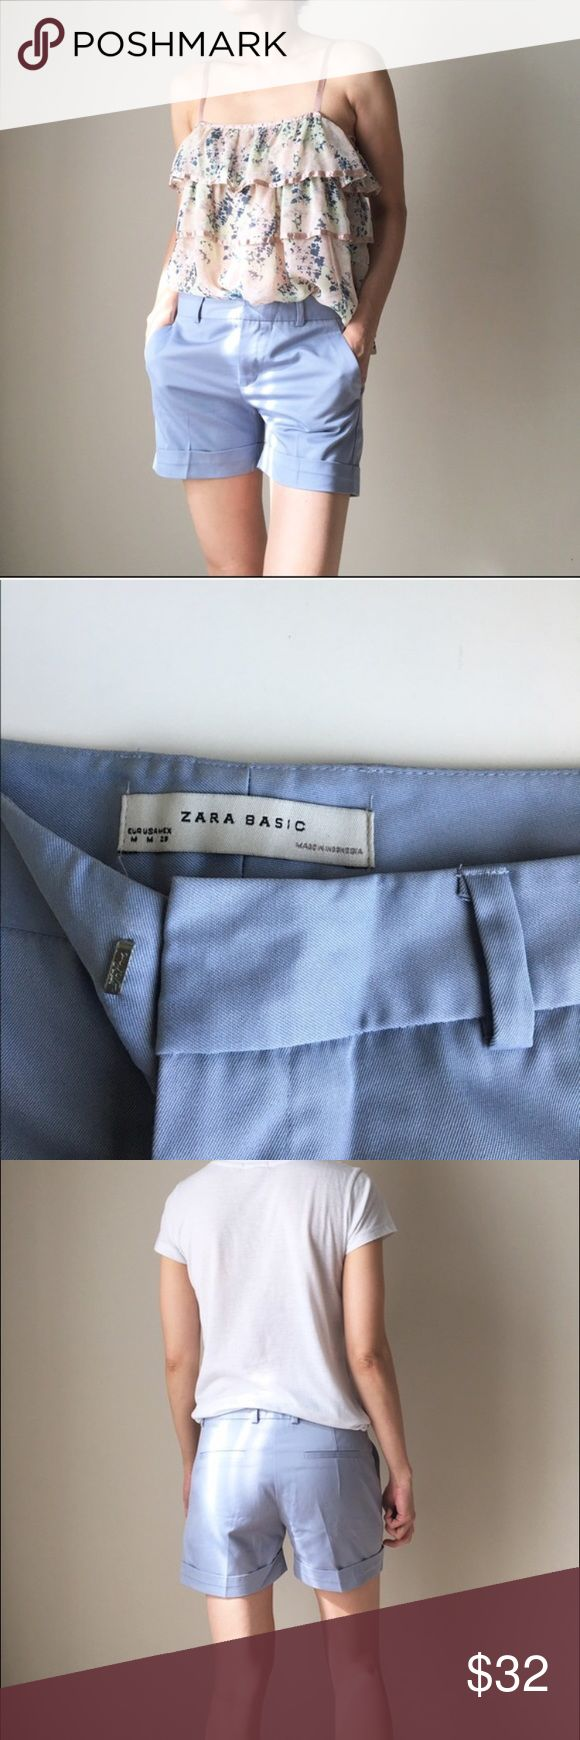 ZARA basic shorts in blu Size M but I find it a lil too smug . Meant for size s or xs. Almost news ..just sitting in the closet new:p Zara Shorts Jean Shorts